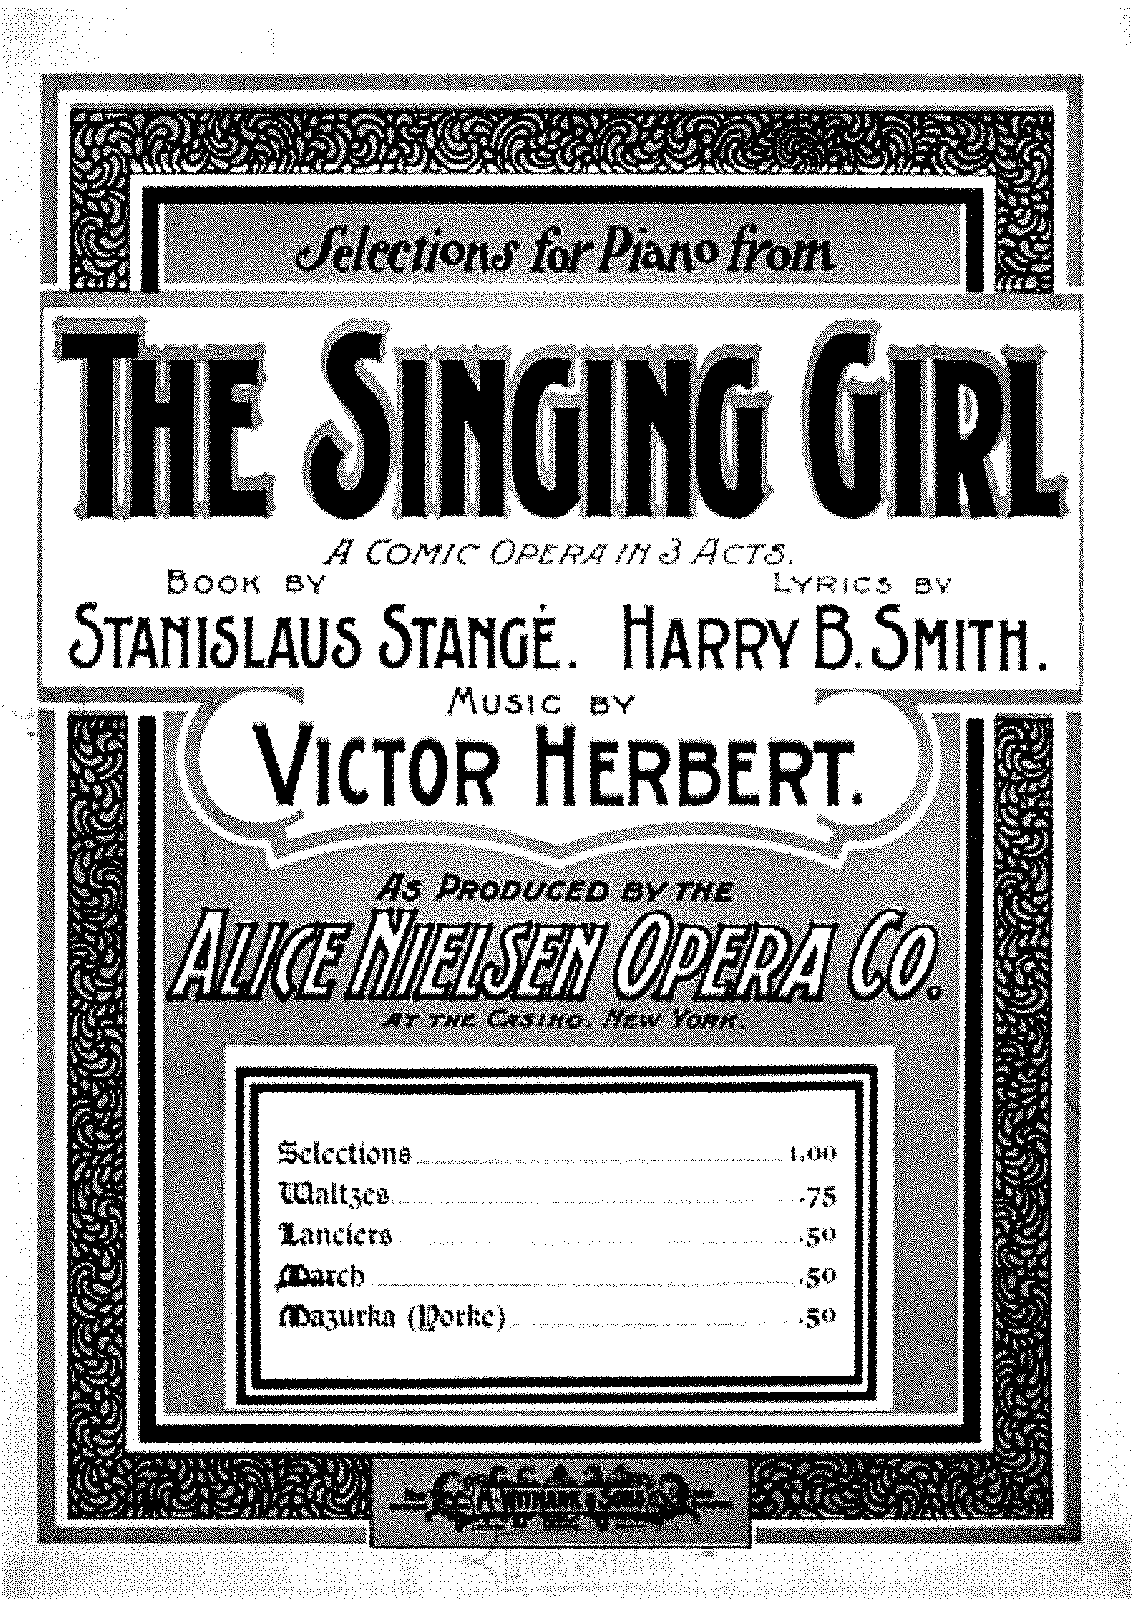 Herbert - The Singing Girl - March.pdf